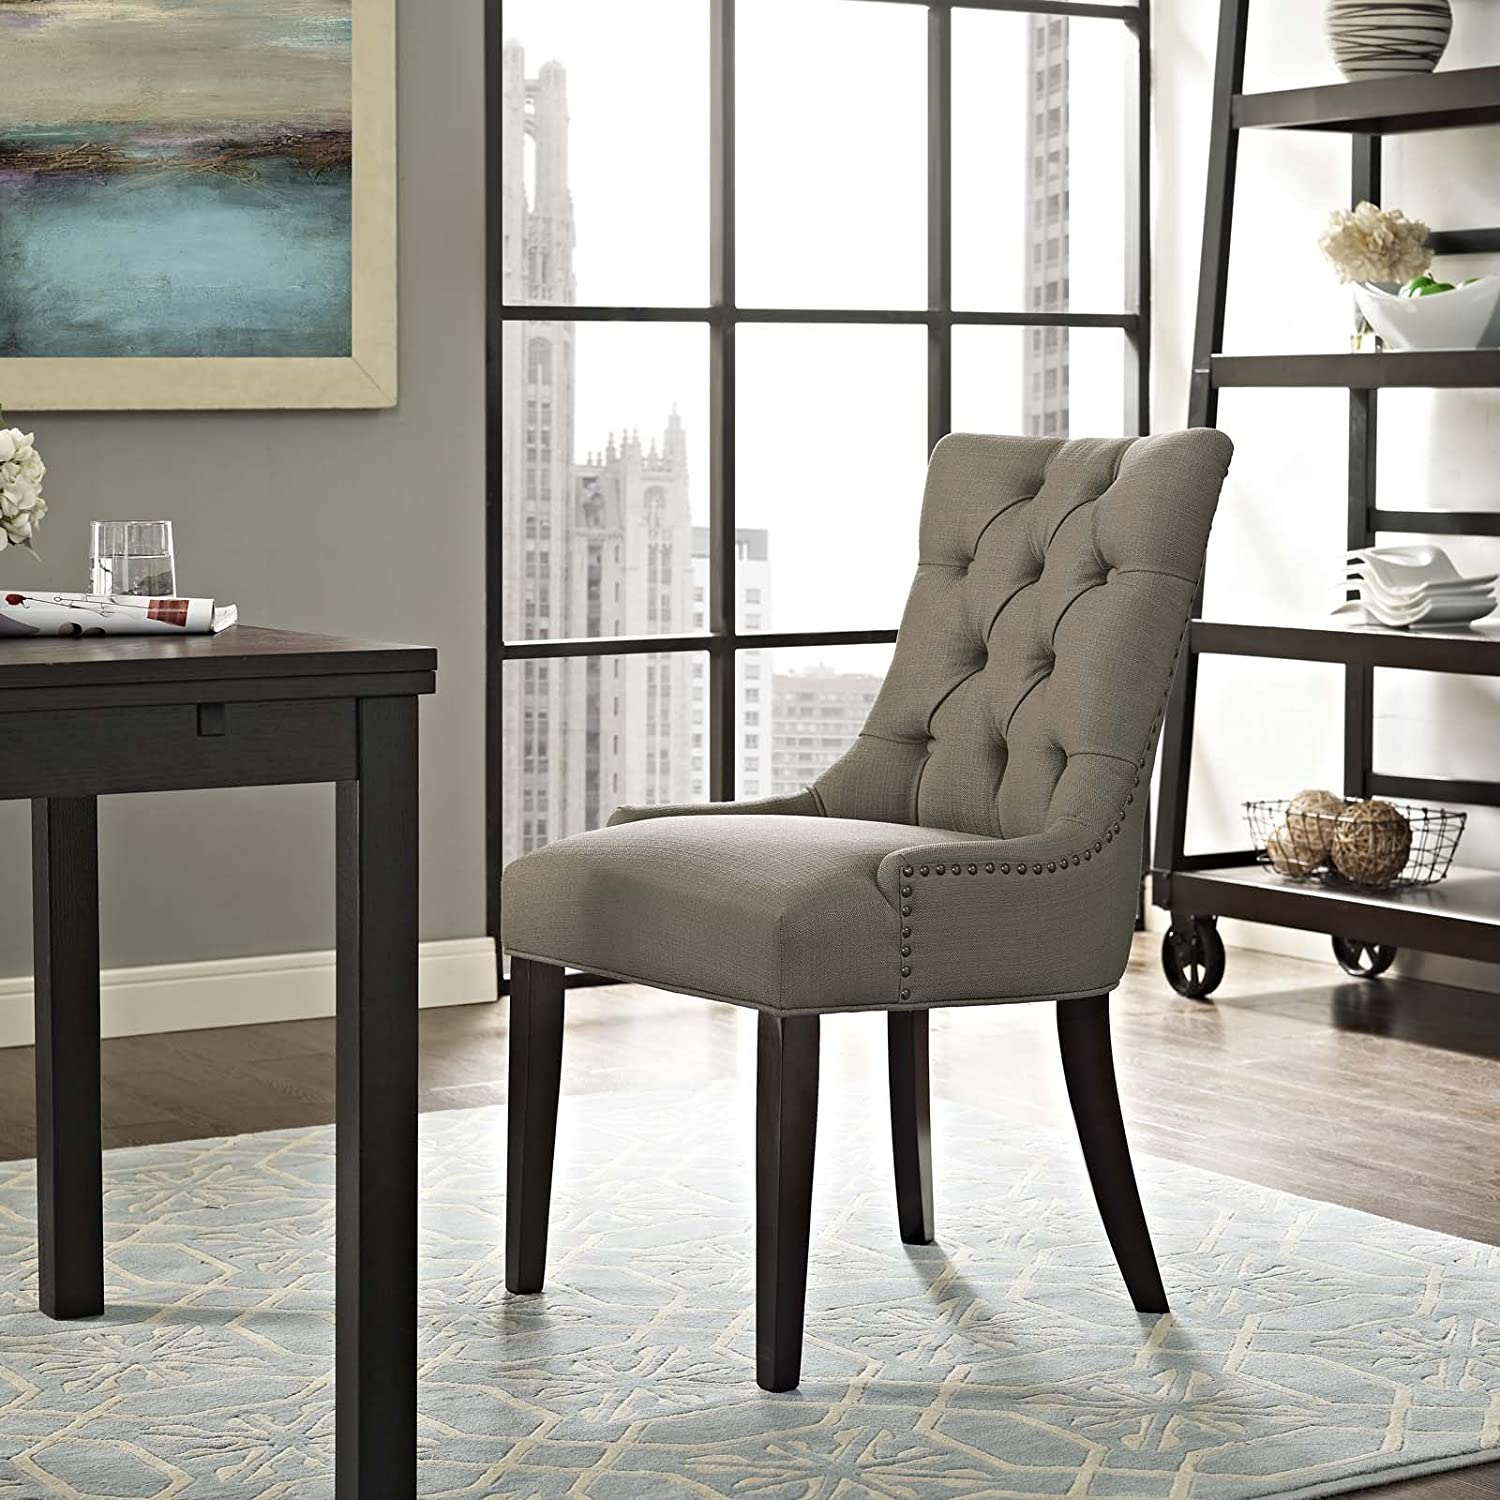 Modway Regent Modern Tufted Upholstered Fabric Kitchen and Dining Room Chair with Nailhead Trim in Granite